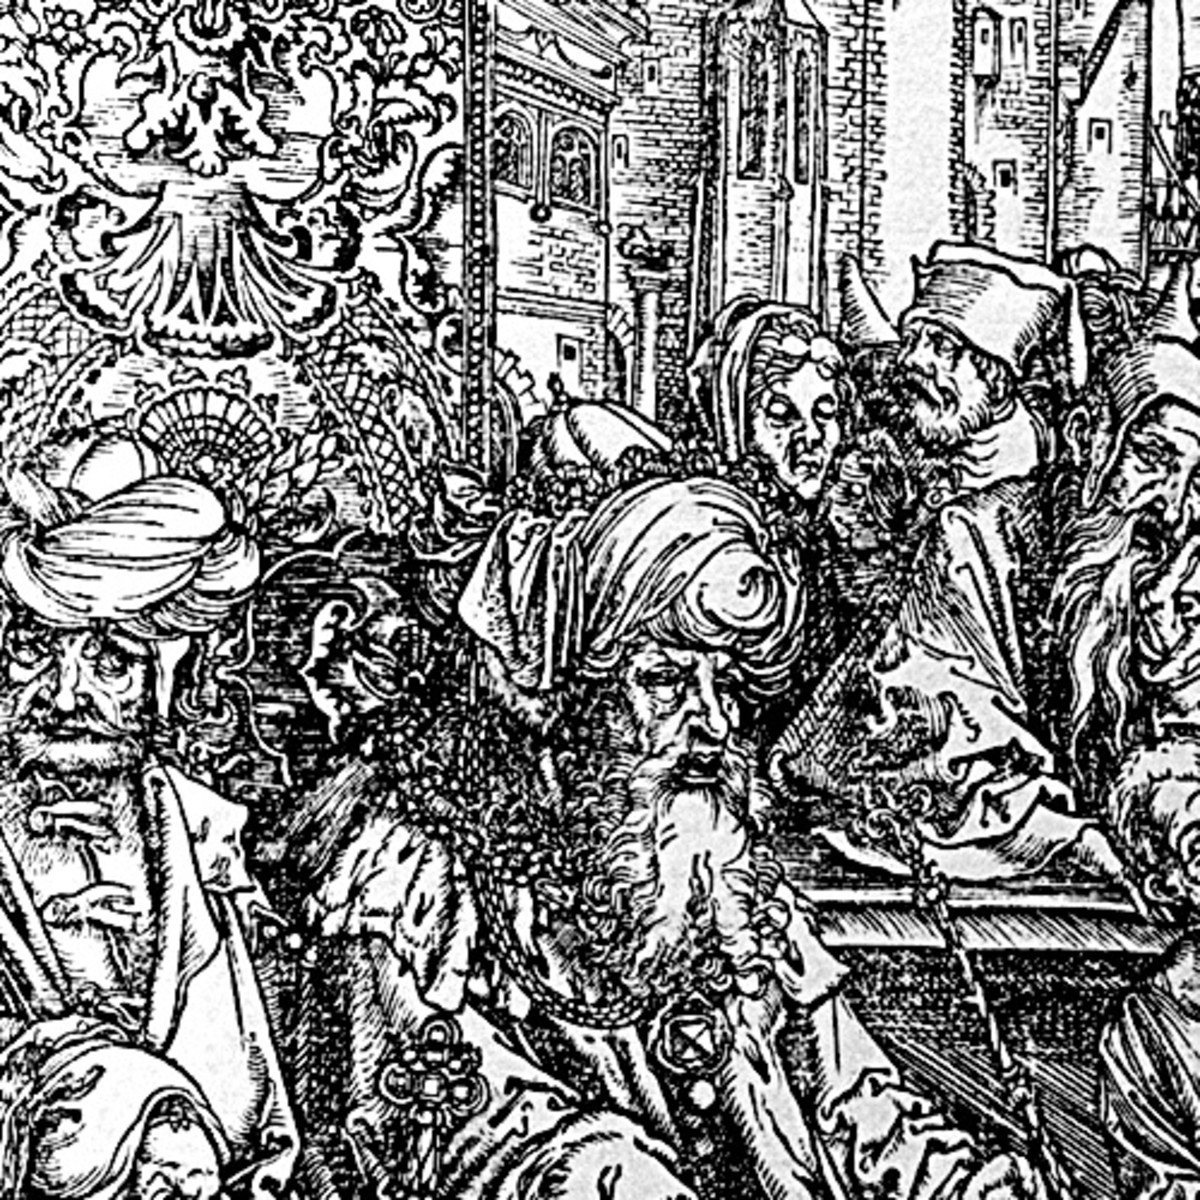 "Here we show another portion of ""The Martyrdom of St John"" by Albrecht Durer. In this this image, we see the Emperor Domition and members of his Court (to the middle and left) and some medieval Gothic architectural features (in the background)."